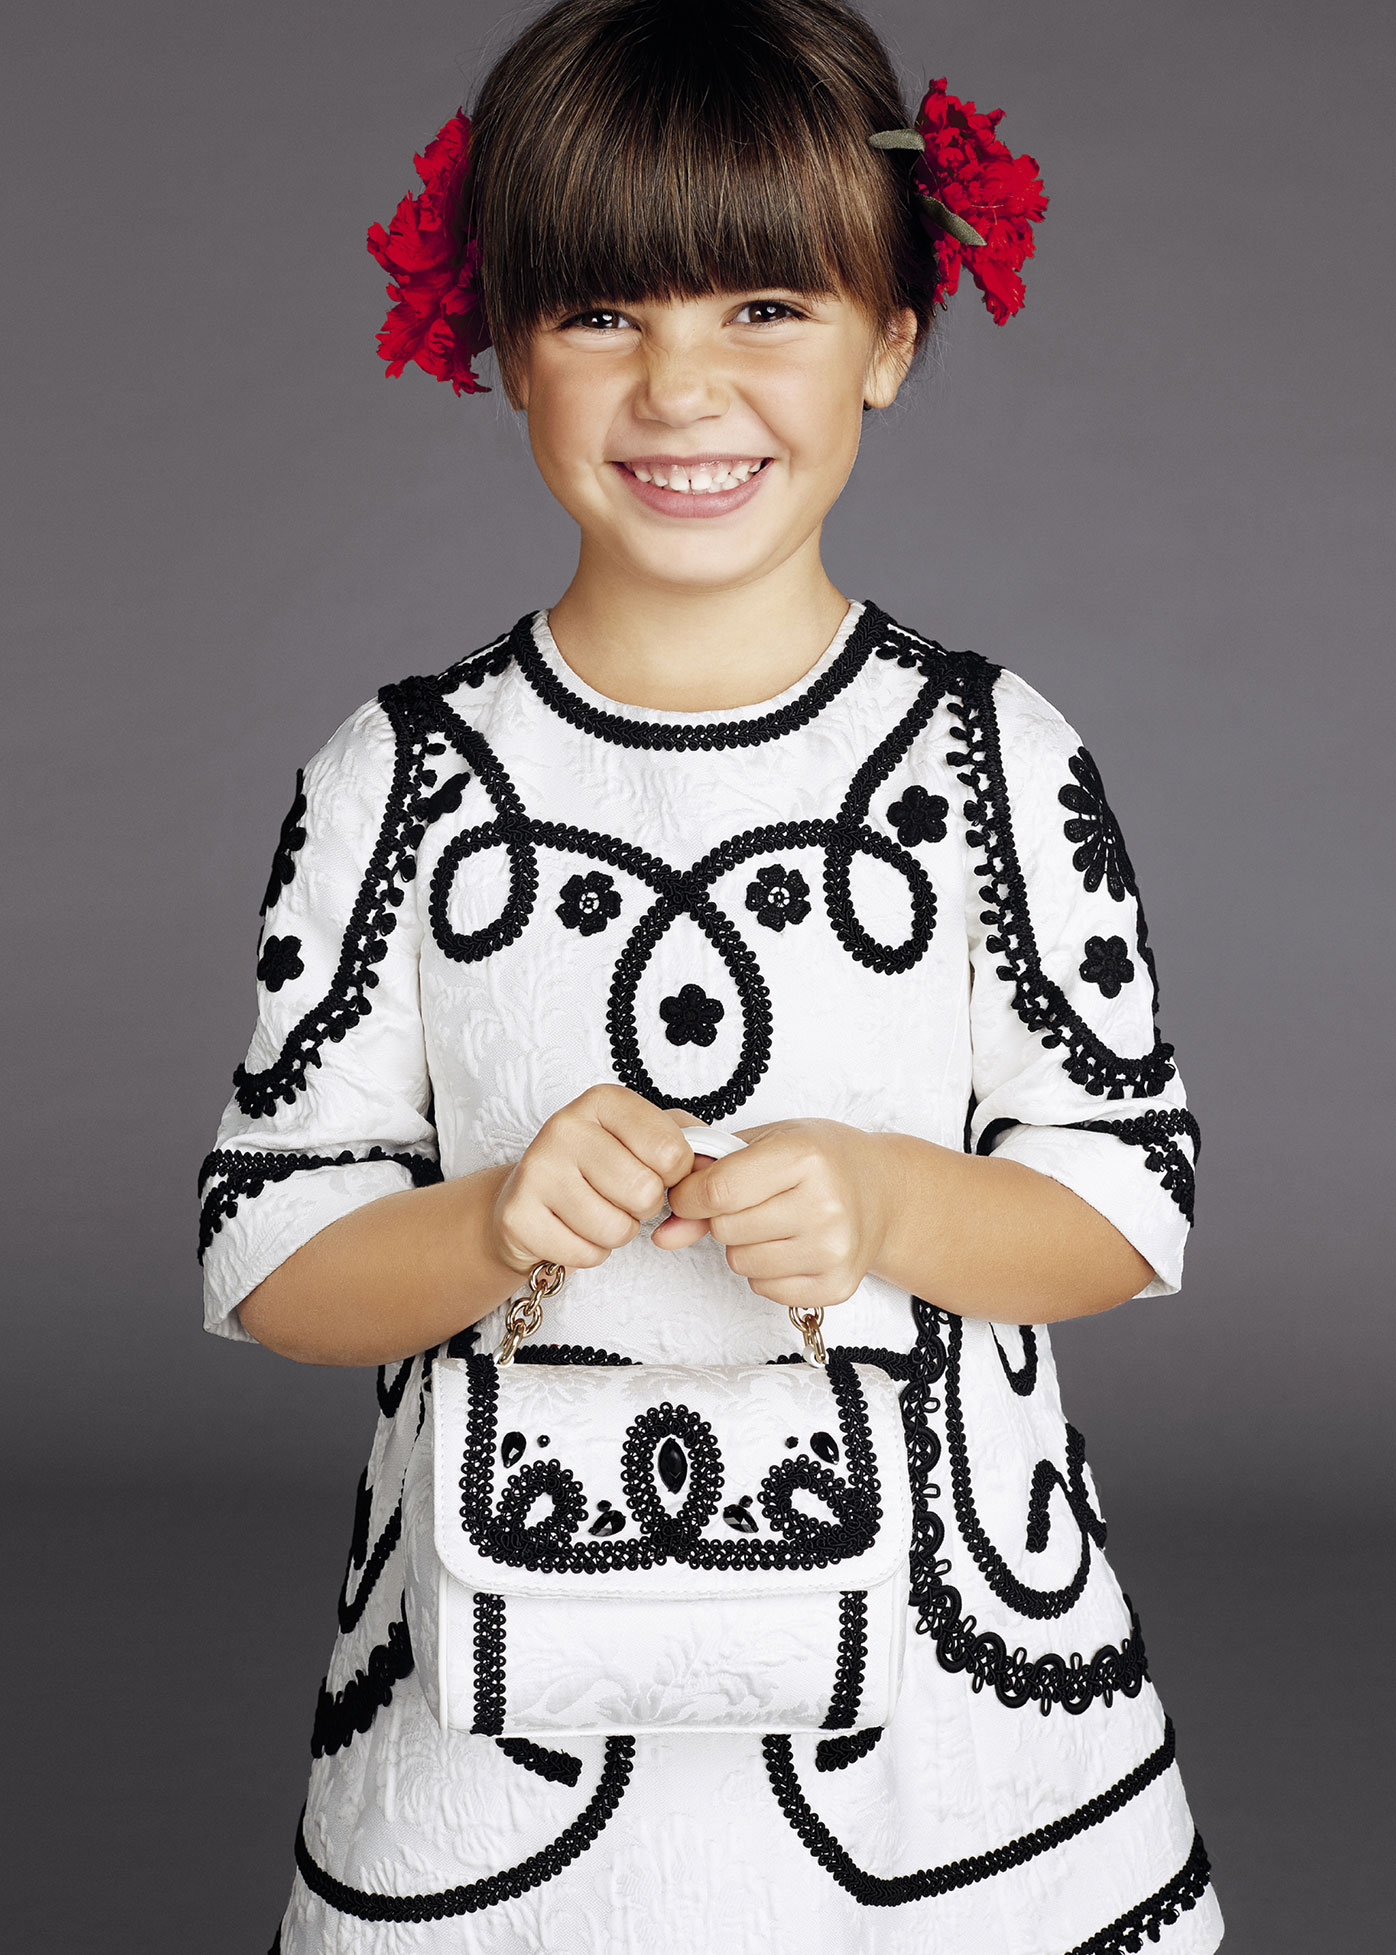 dolce-and-gabbana-summer-2015-child-collection-36-zoom.jpg